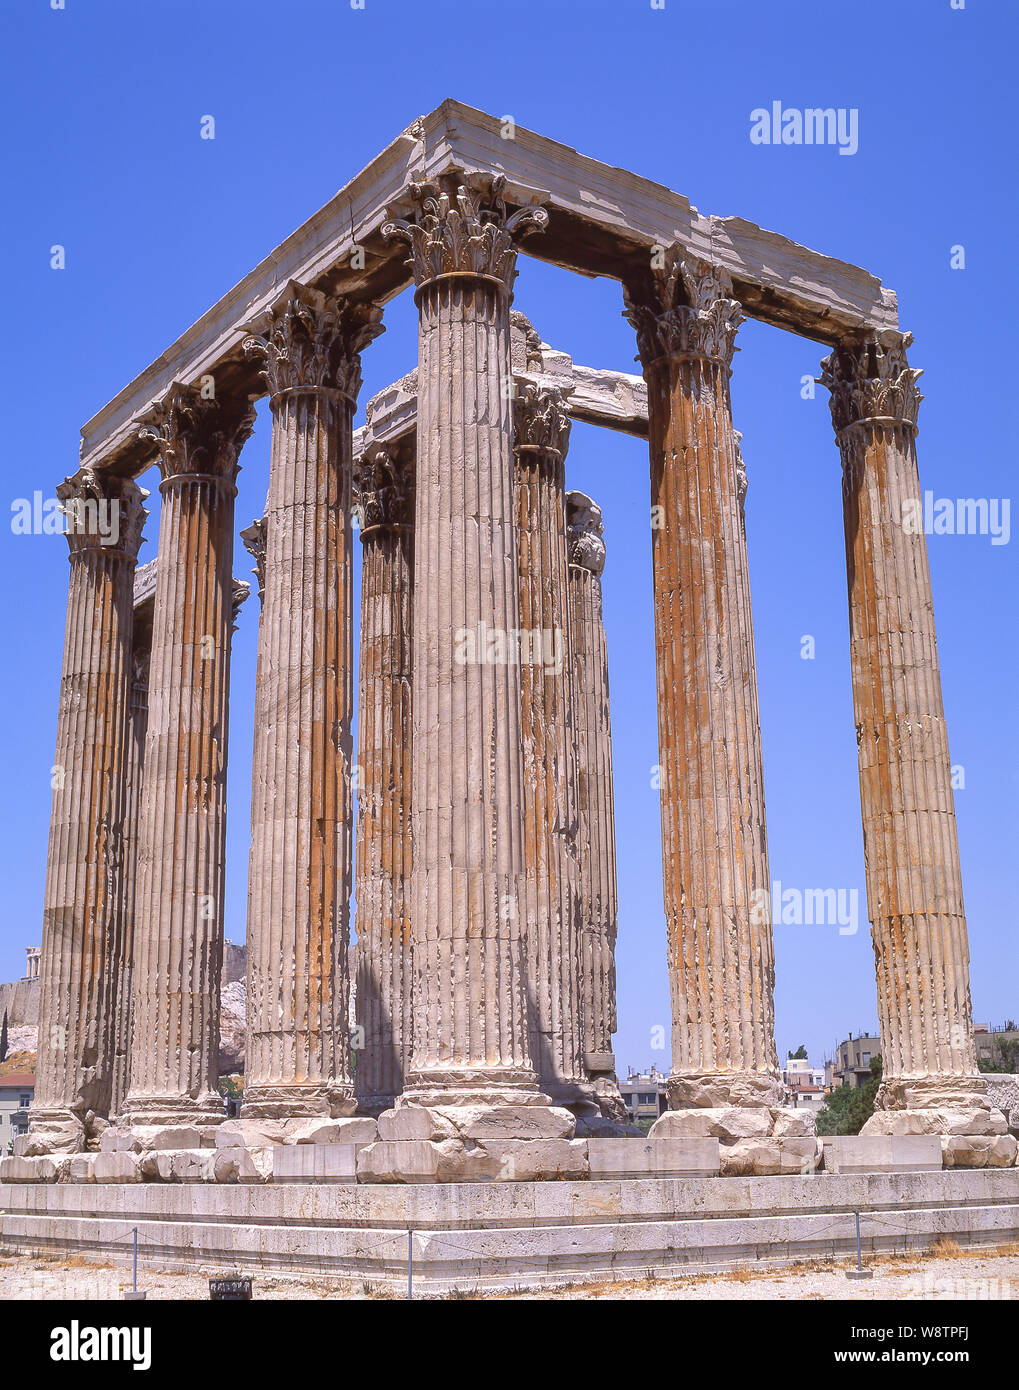 Corinthian columns, The Temple of Olympian Zeus, Athens, Central Athens, Greece Stock Photo